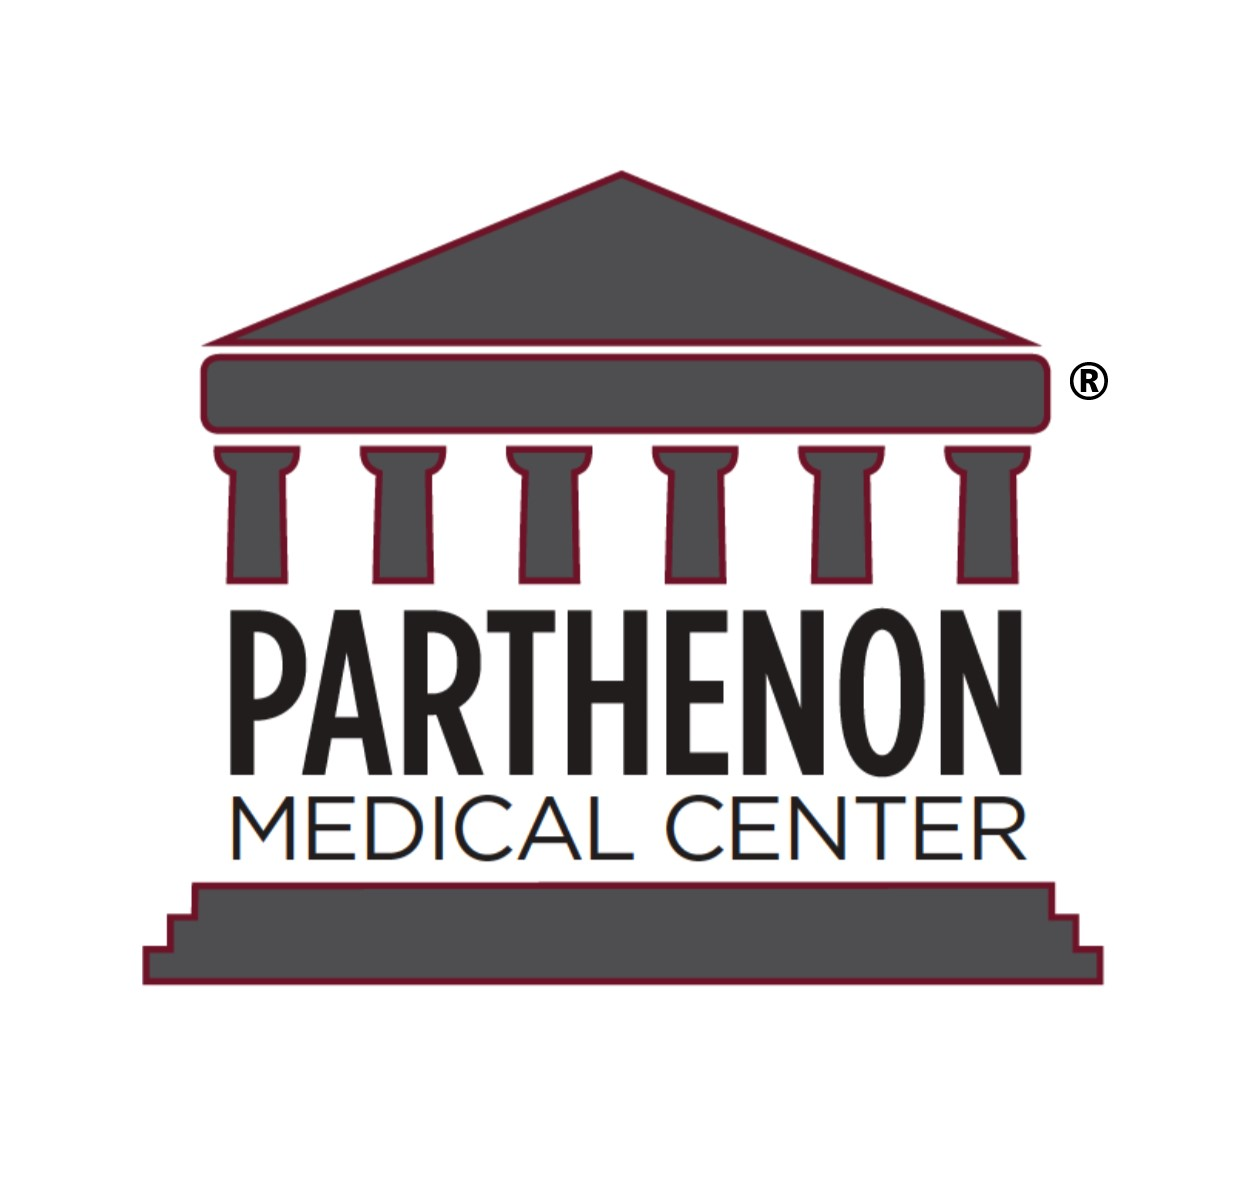 Parthenon Medical Center